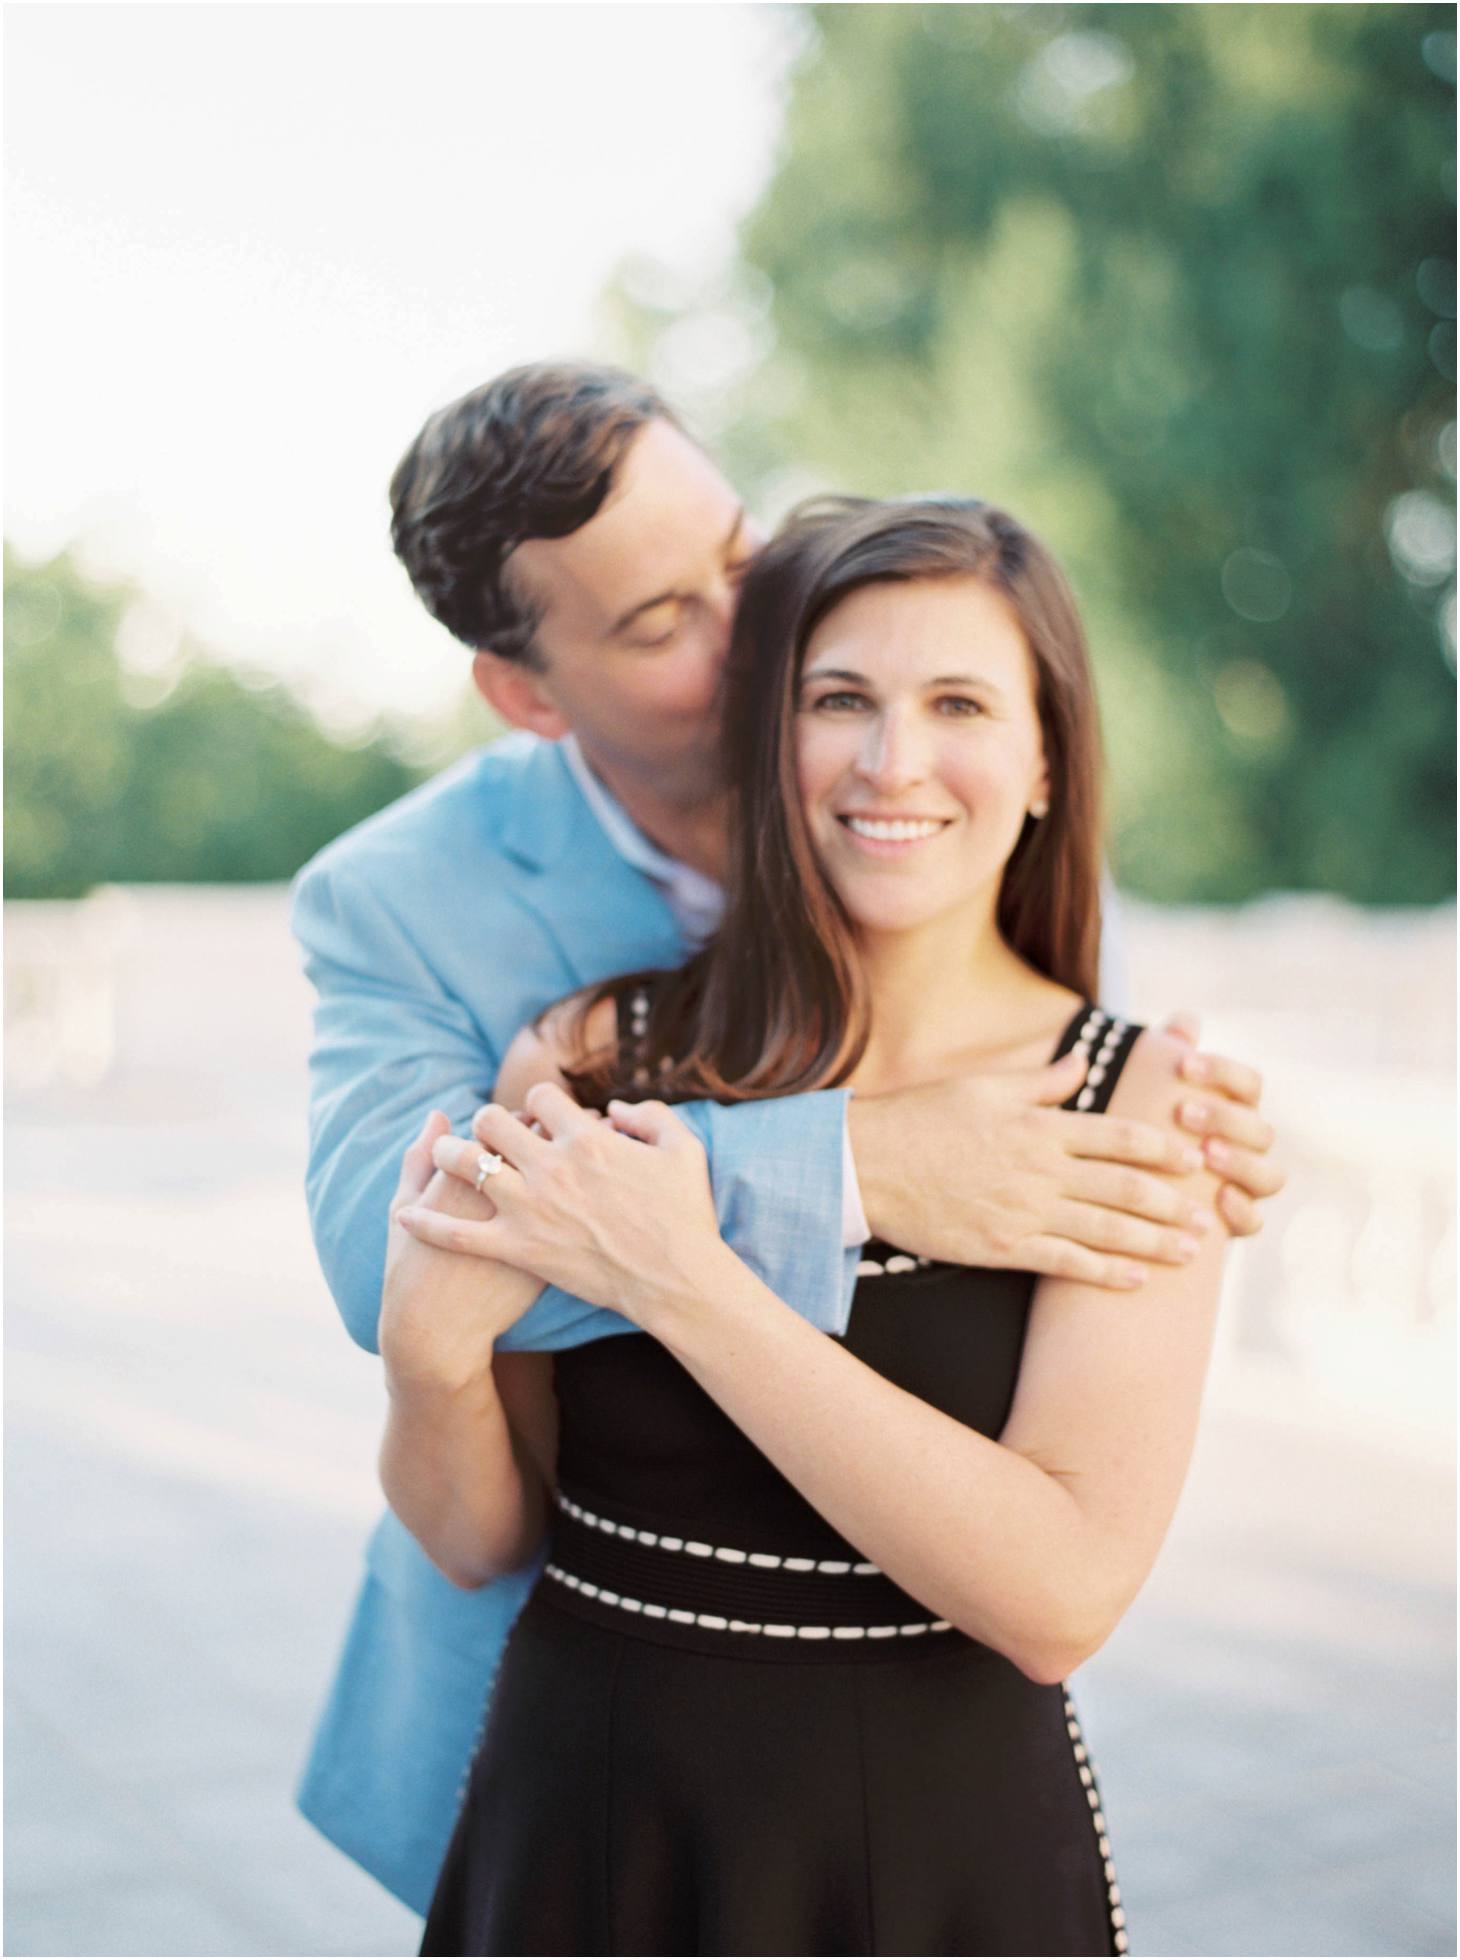 kim-stockwell-photography-fine-art-film-engagements-charlottesville-virginia-meghan-and-taylor_0853